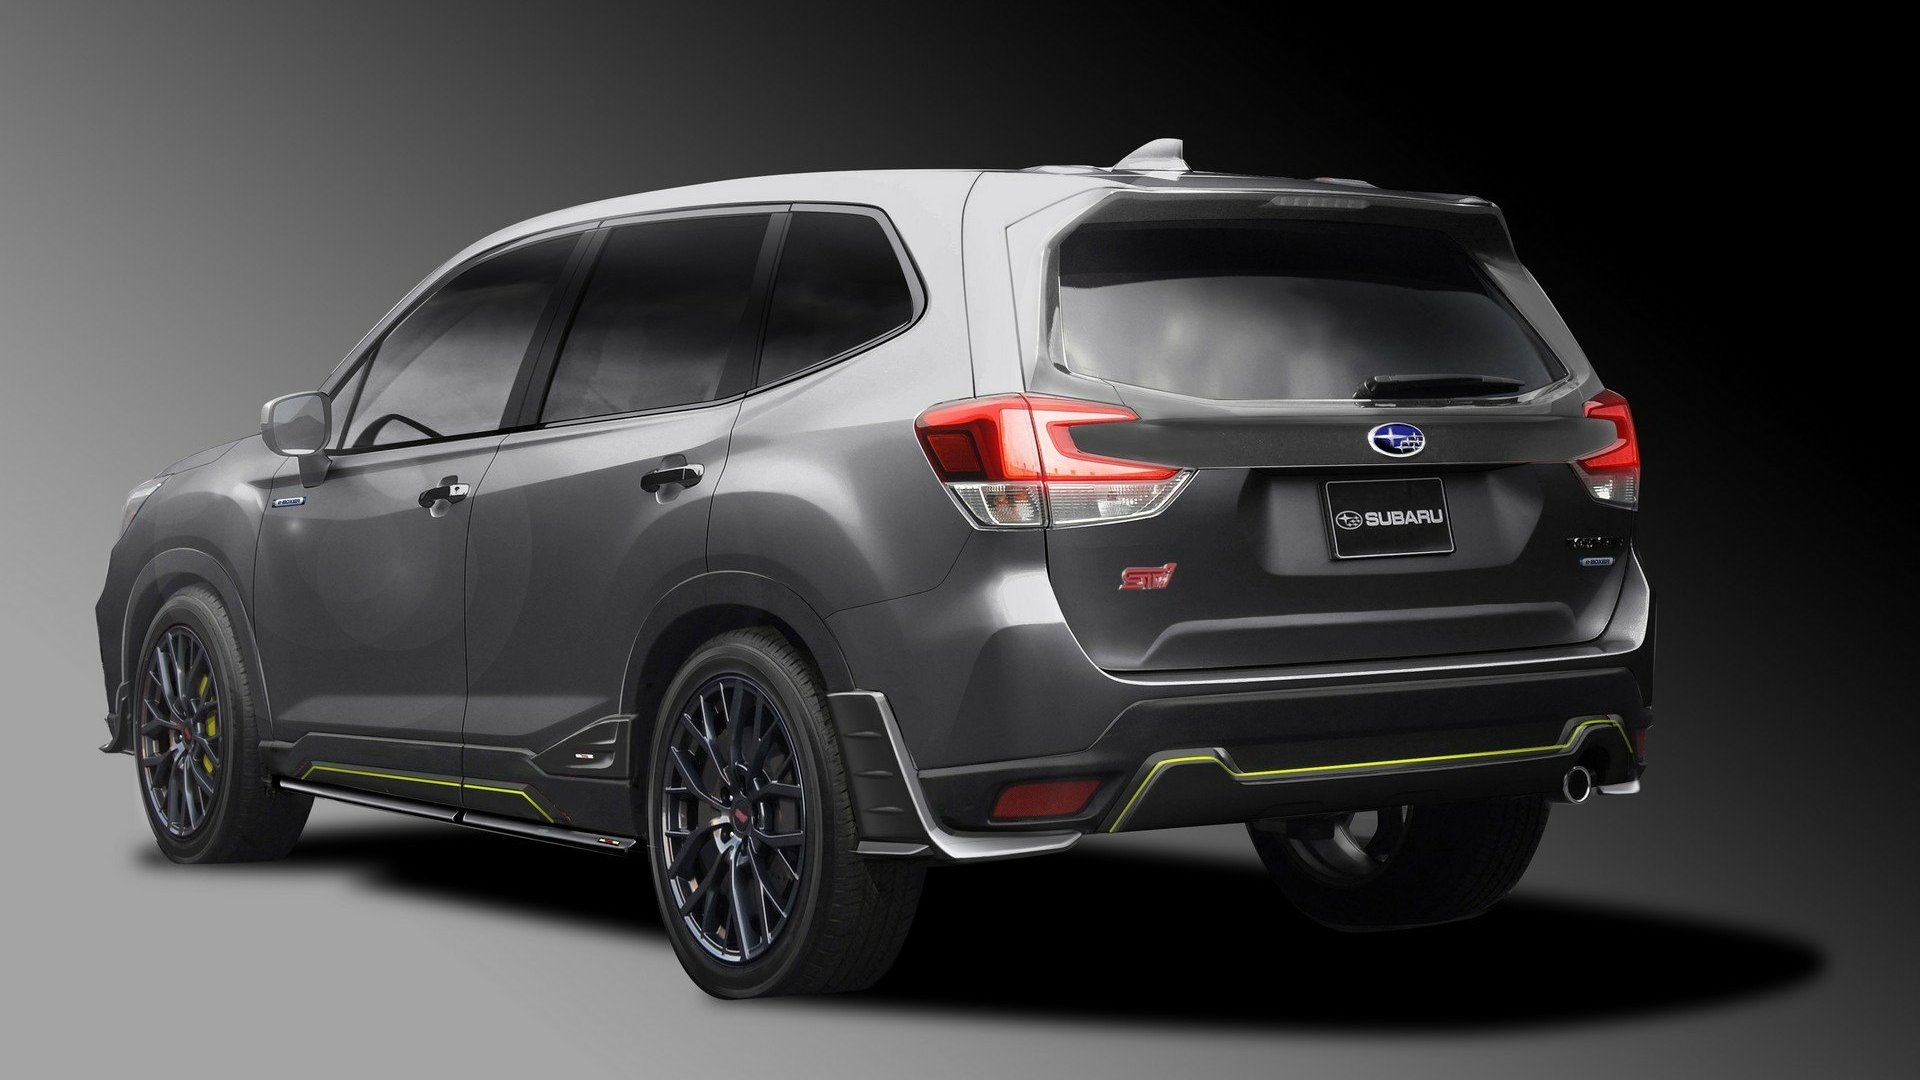 20 New 2020 Subaru Forester Engine